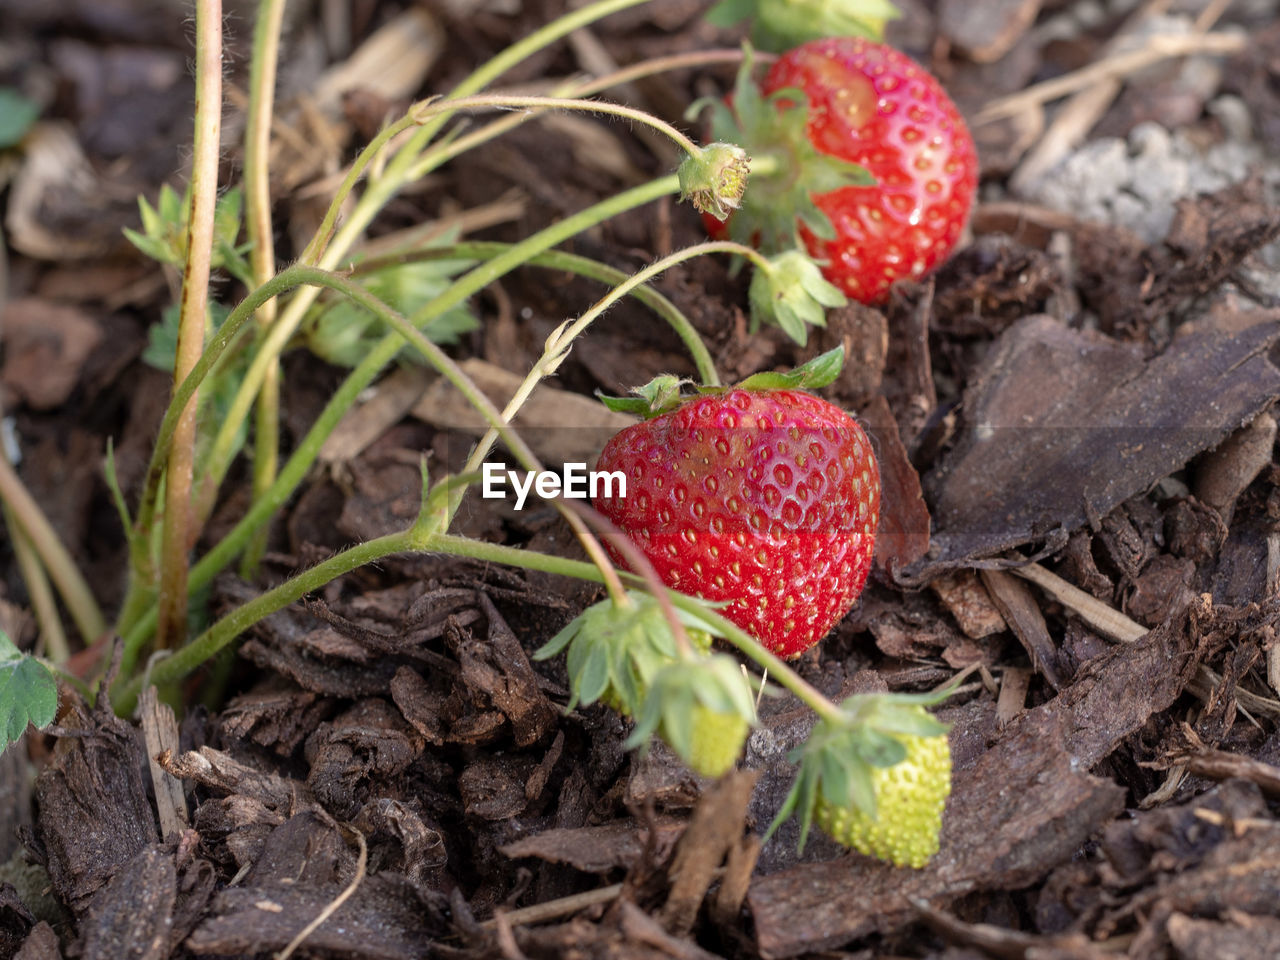 food, food and drink, growth, red, healthy eating, land, fruit, plant, field, freshness, nature, leaf, plant part, close-up, no people, berry fruit, strawberry, vegetable, day, high angle view, outdoors, ripe, gardening